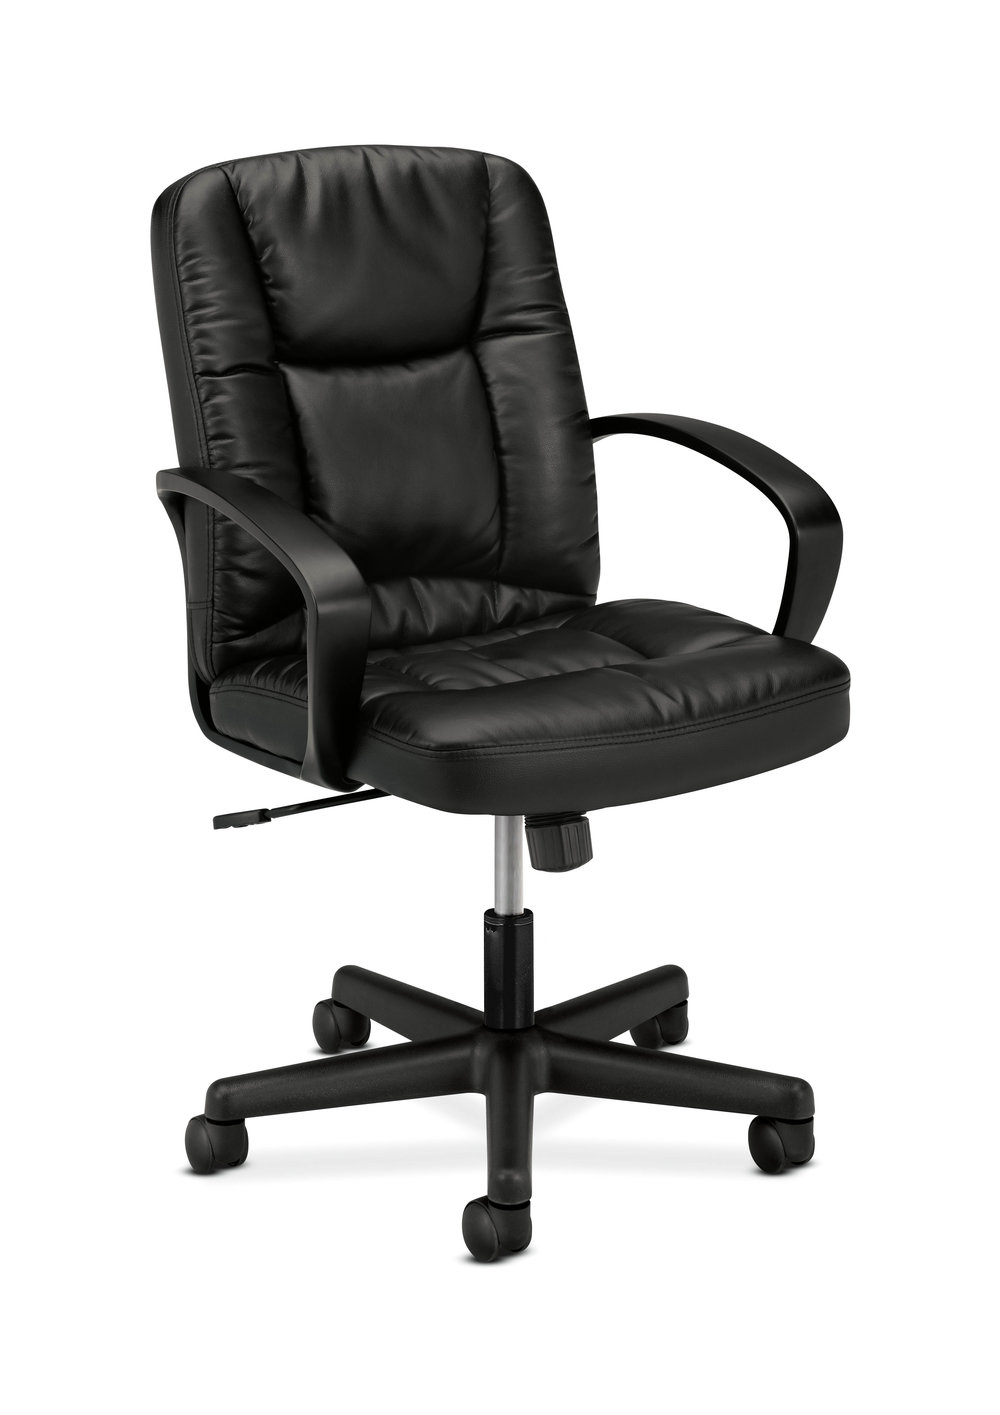 HON VL171 Mid-Back Chair